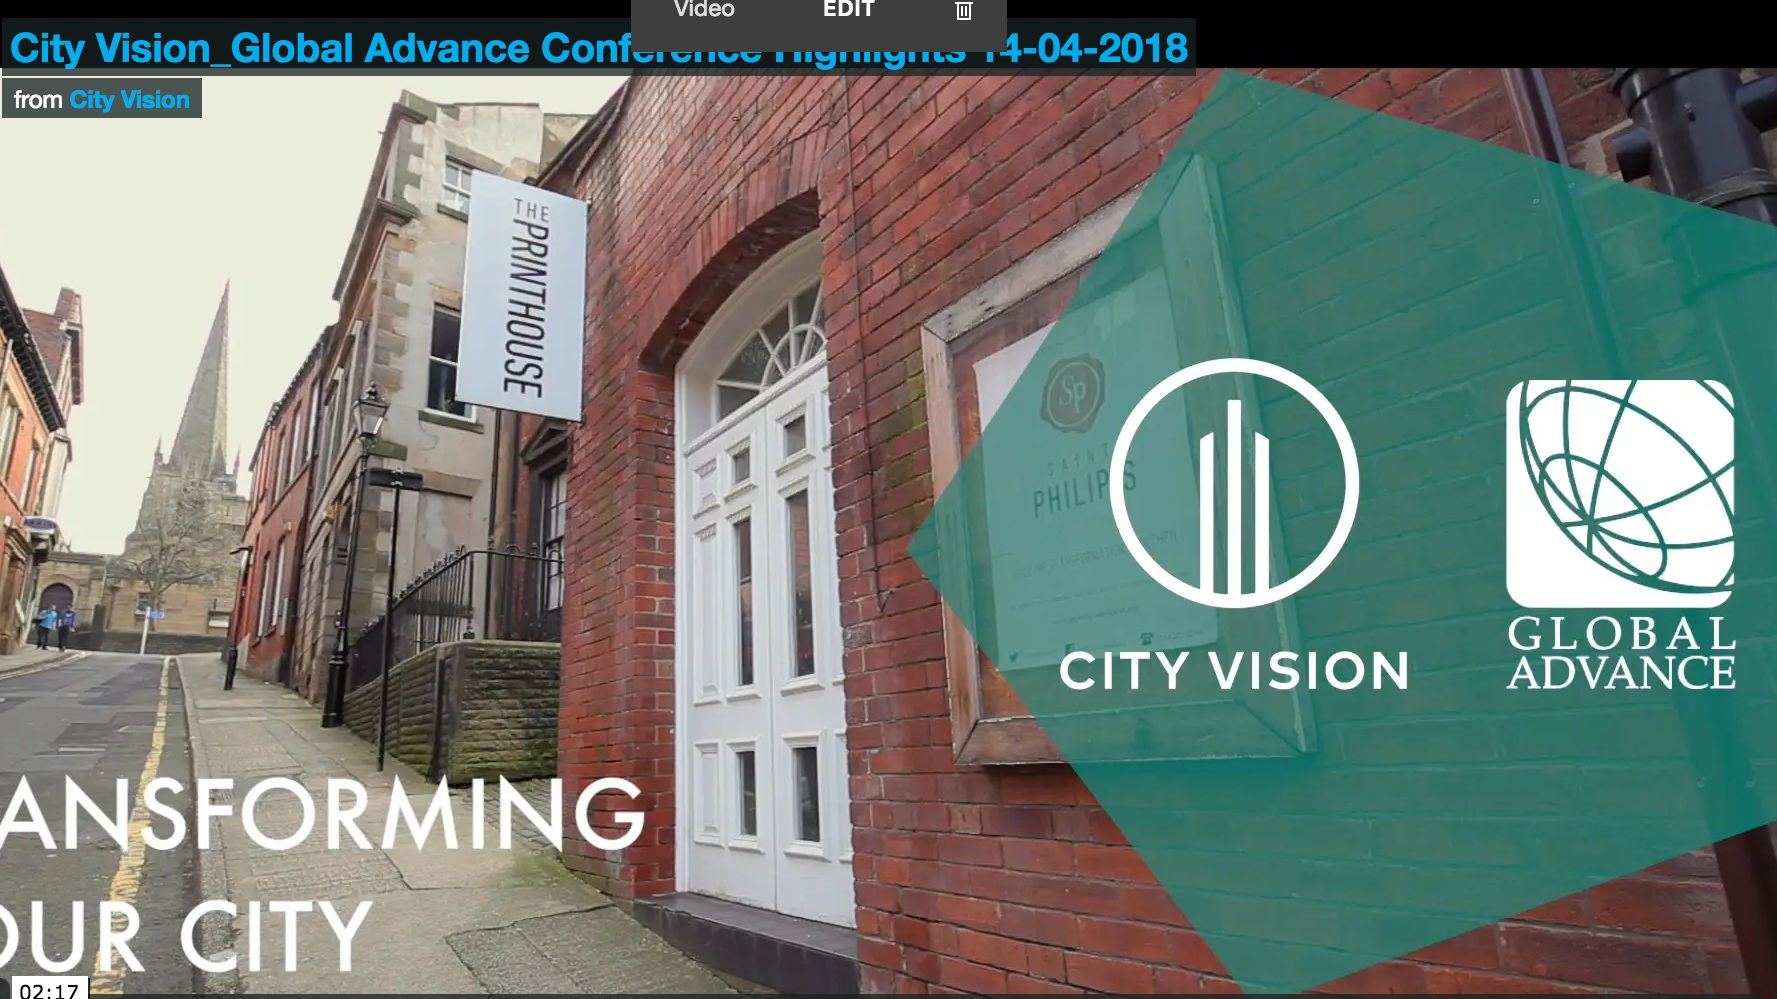 Sheffield conference, April 2018